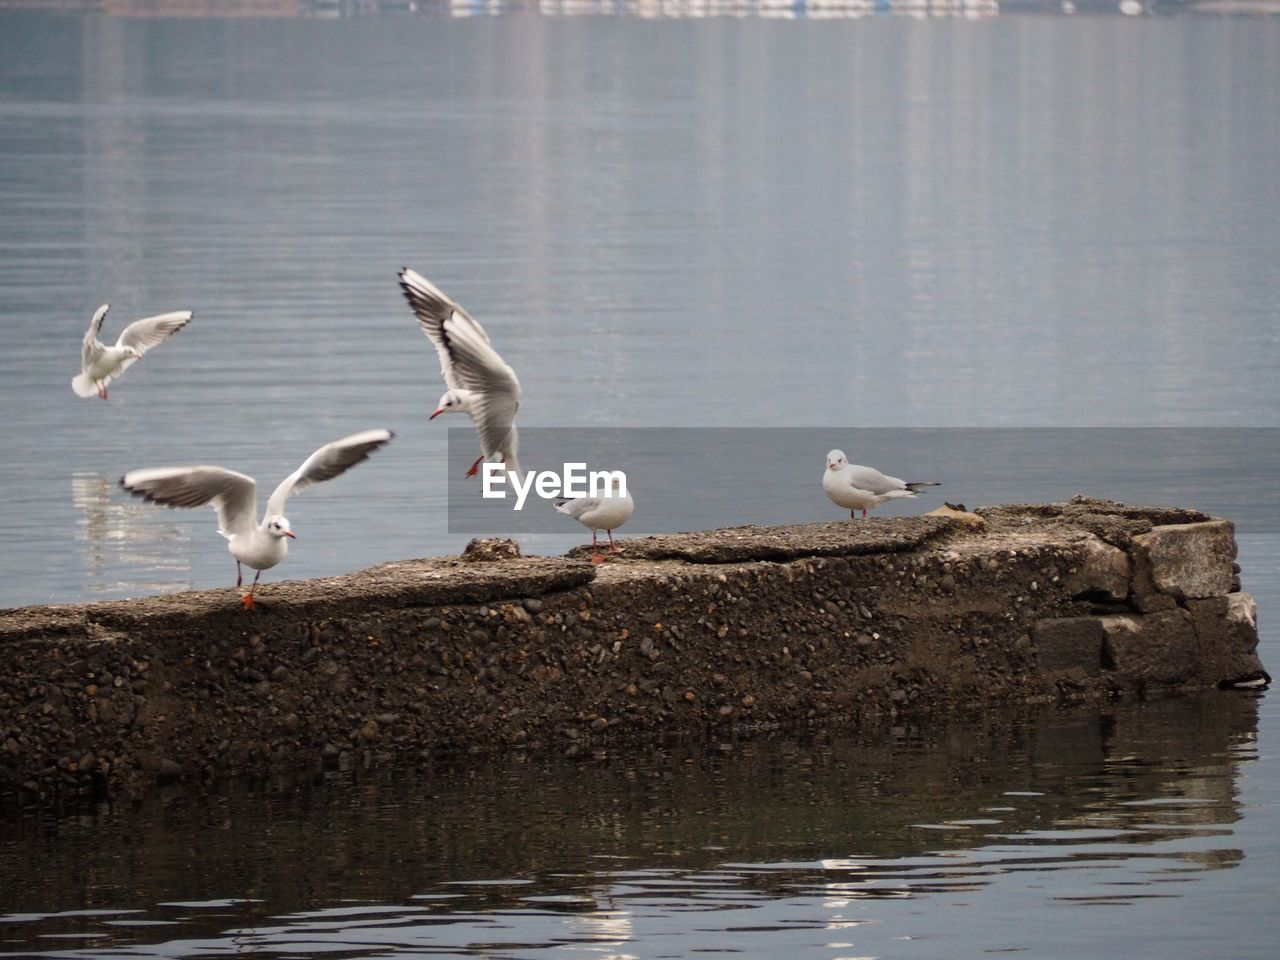 SEAGULLS FLYING OVER LAKE AGAINST BLURRED BACKGROUND